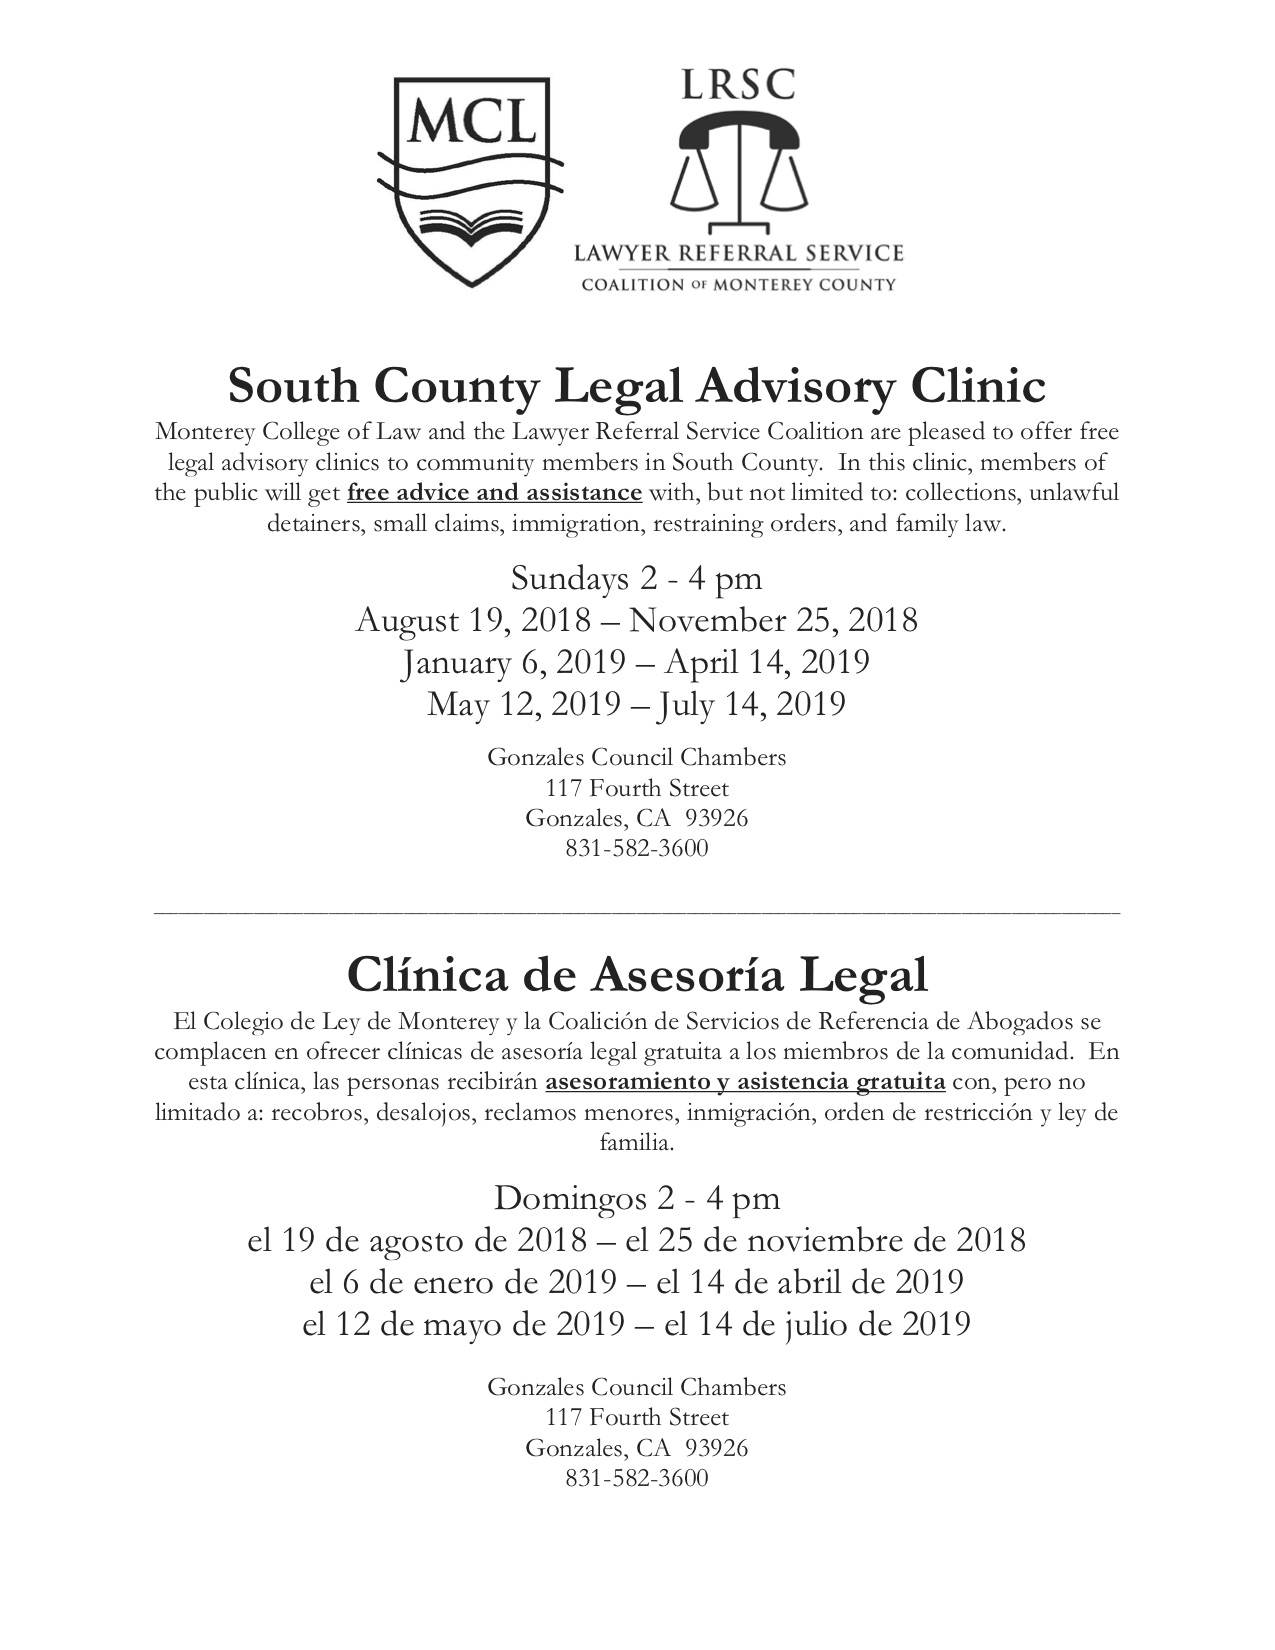 South County Legal Advisory Clinic, Sundays from 2-4 pm in the Gonzales Council Chambers